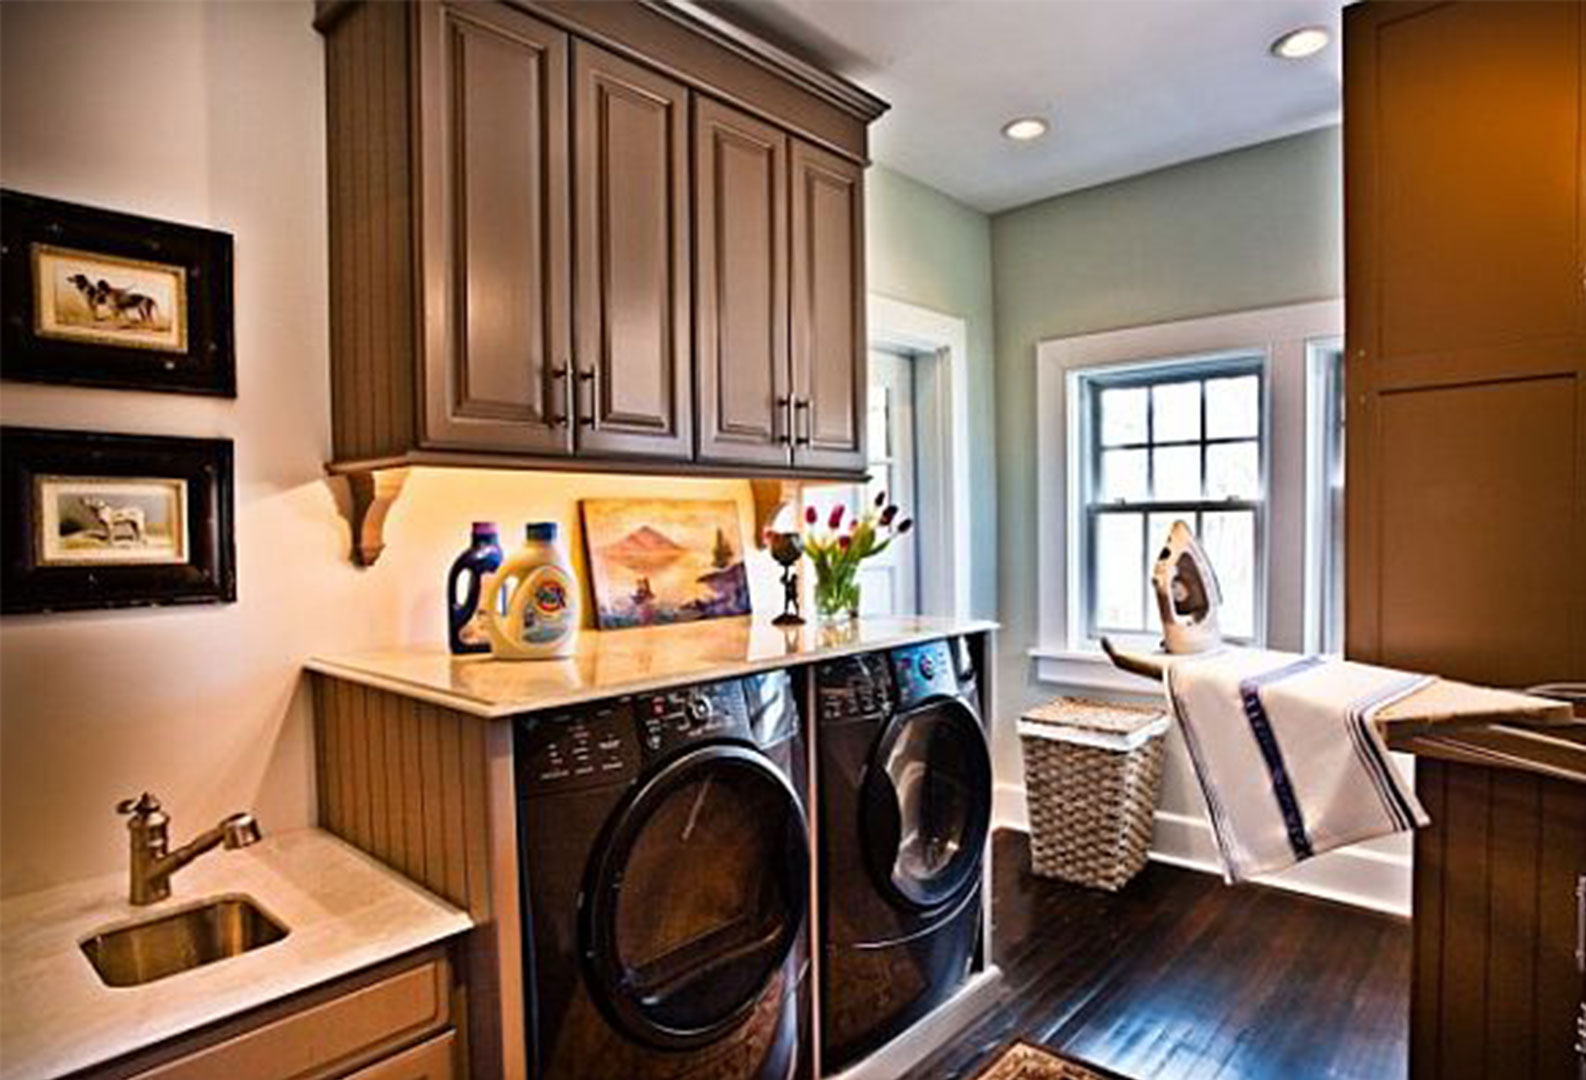 25 Brilliantly Clever Laundry Room Design Ideas on Laundry Room Decor Ideas  id=48626